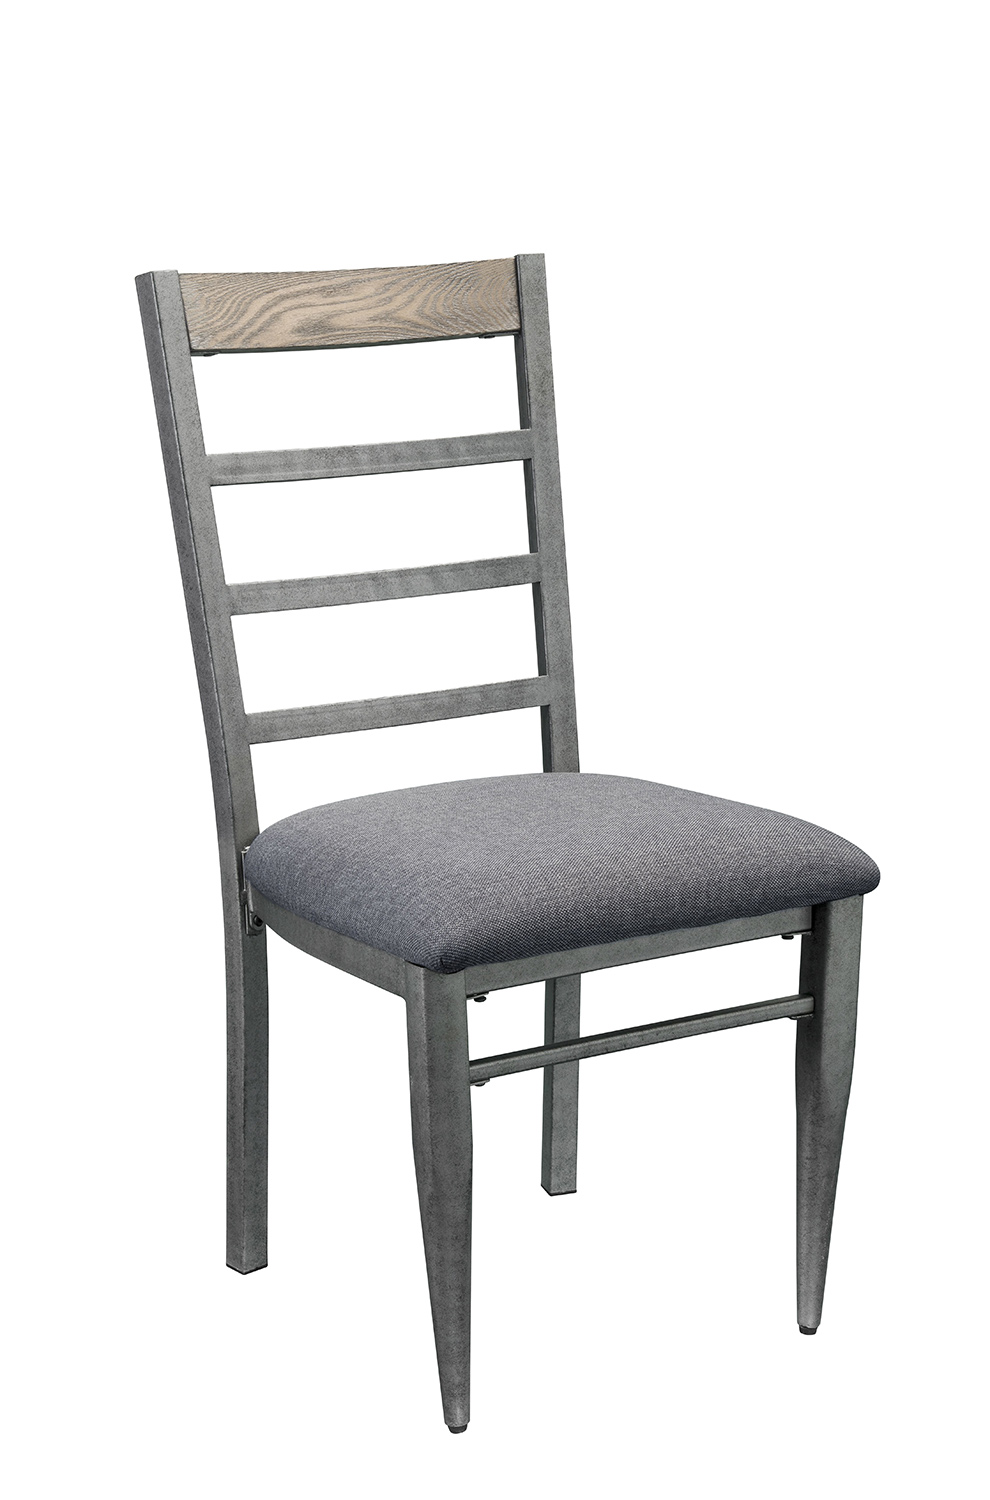 Acme Ornat Side Chair - Gray Fabric/Antique Gray